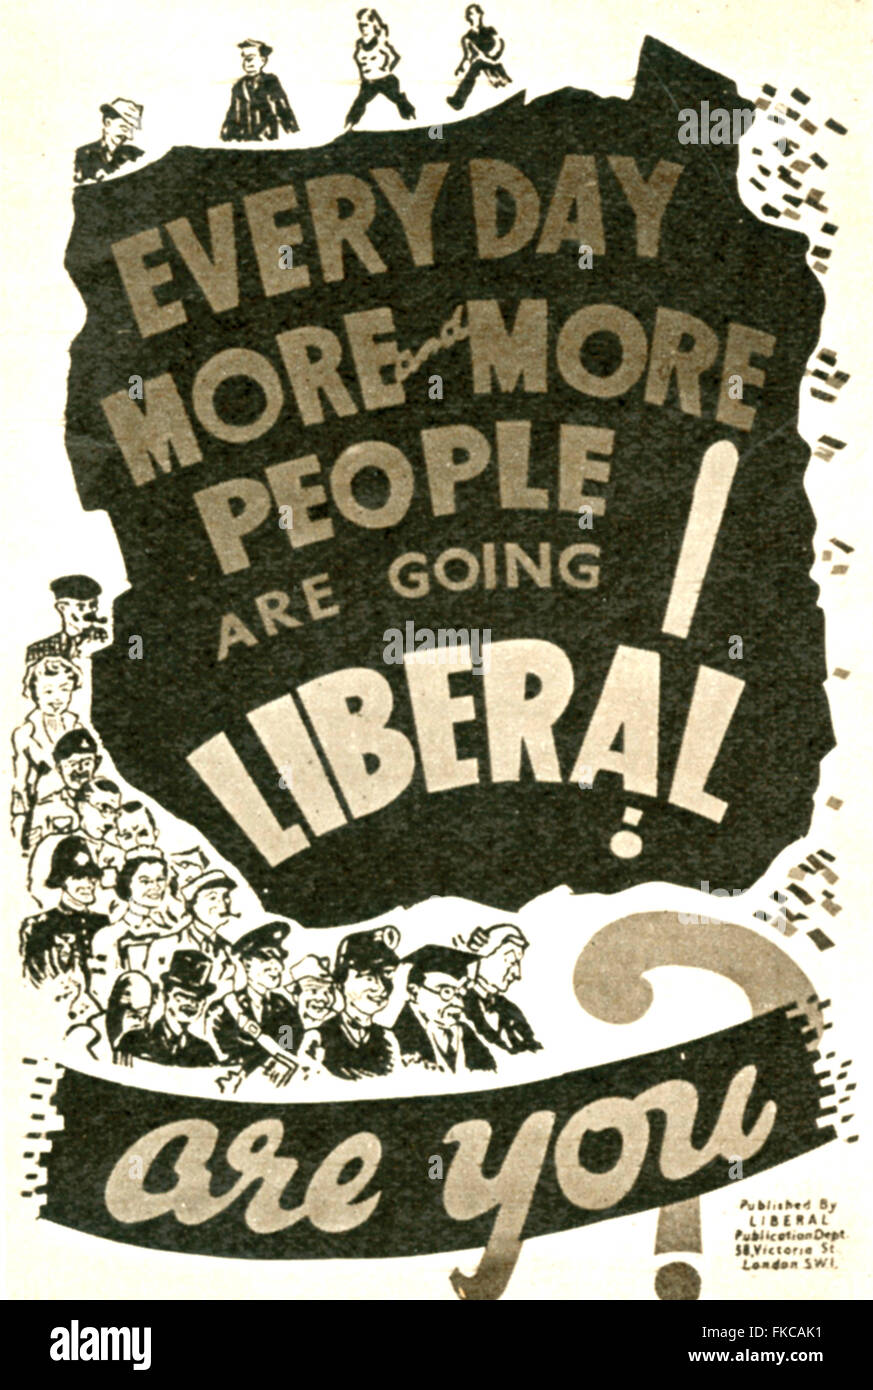 1950s UK The Liberal Democrats Poster - Stock Image